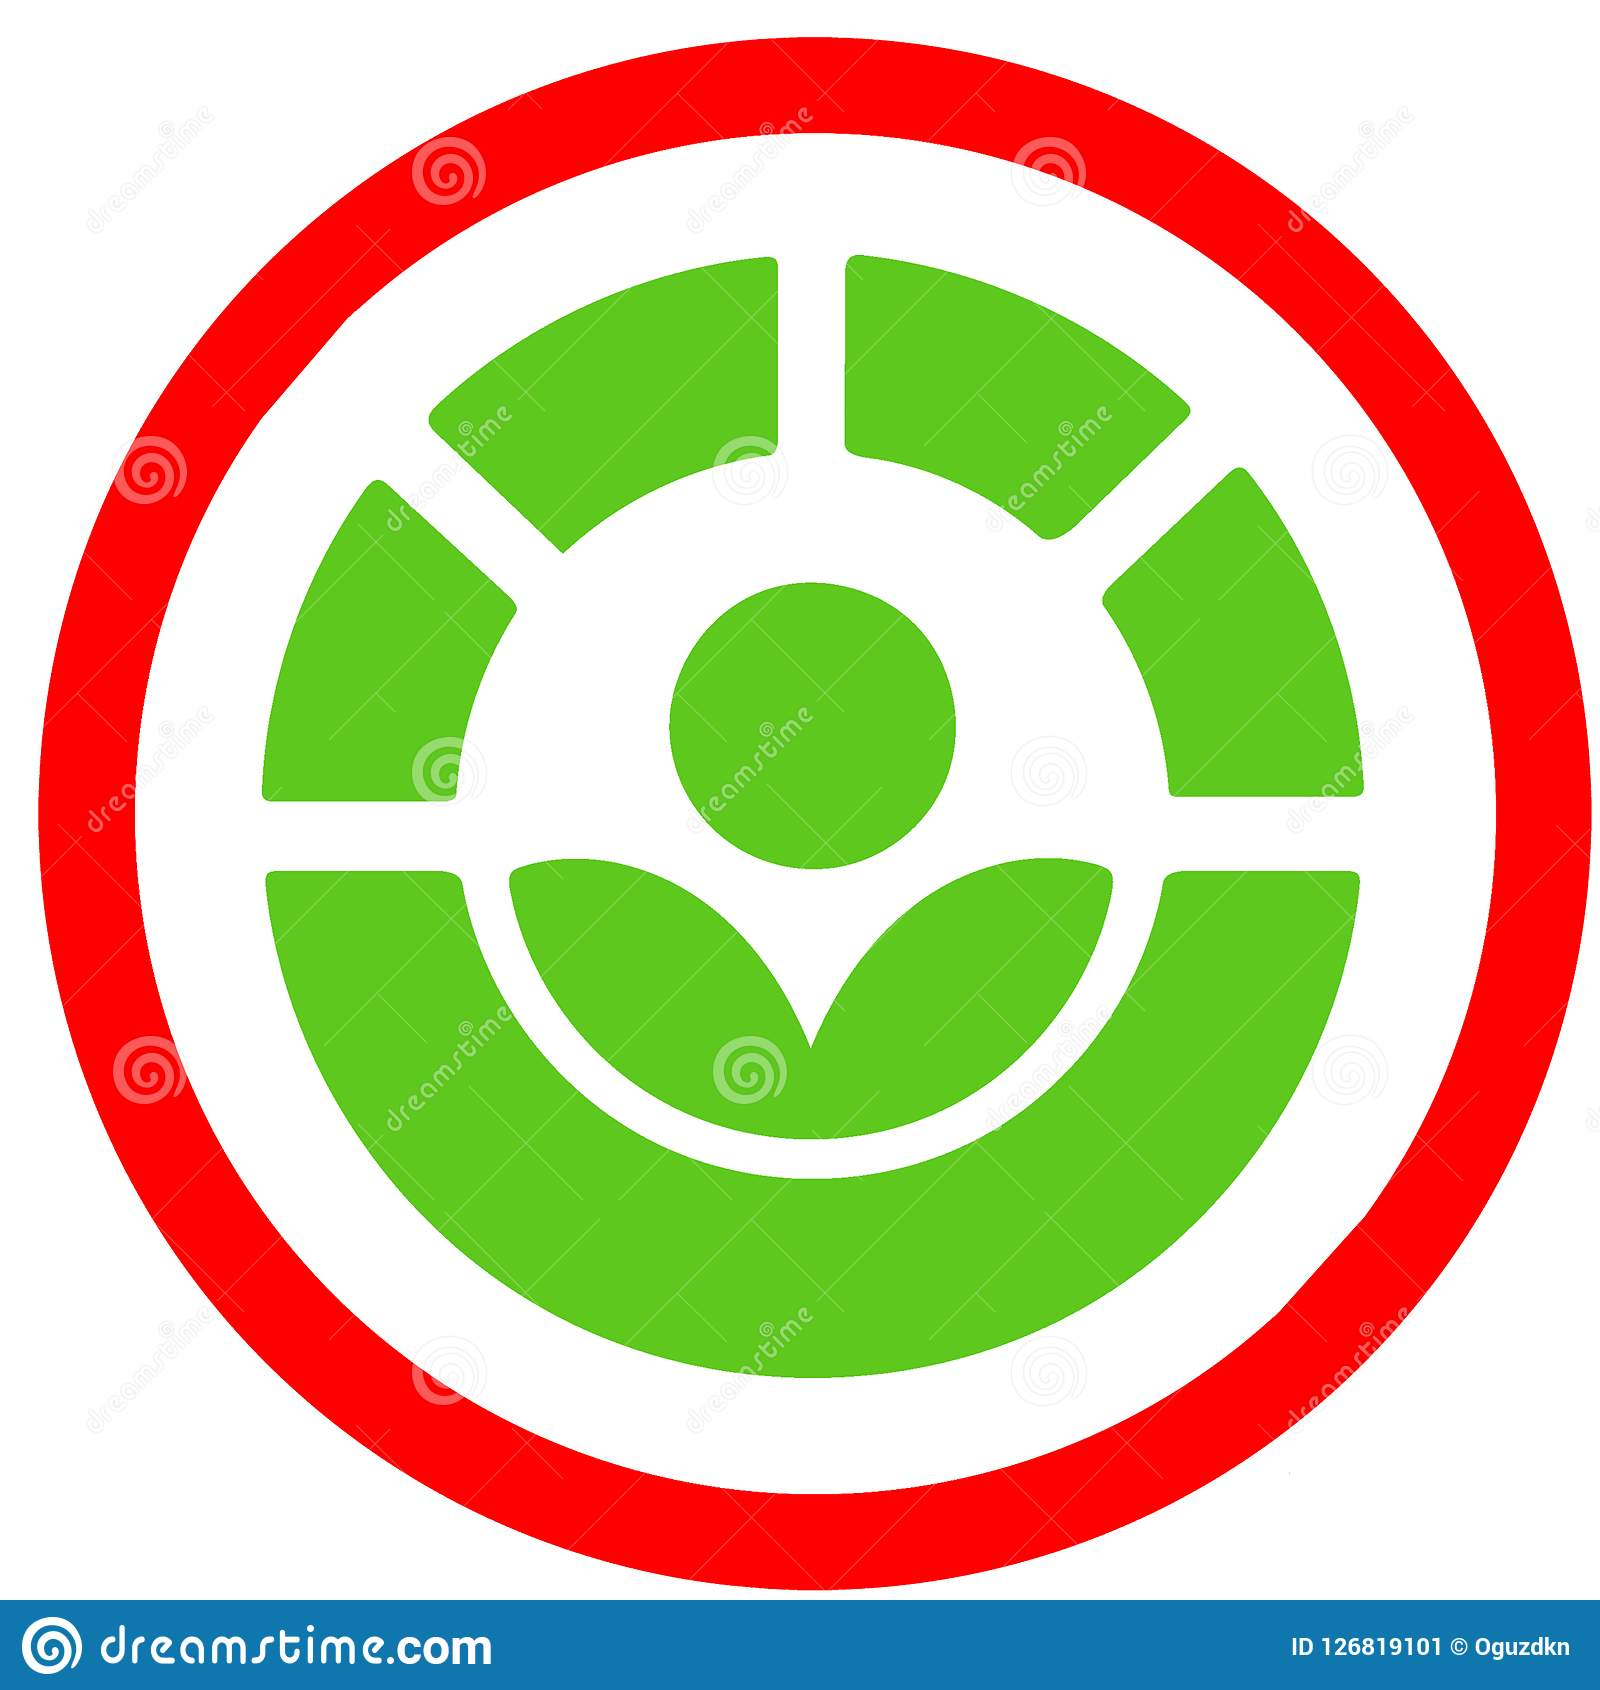 The Radura Process Allowed For Food Disenfection Red Circular Road